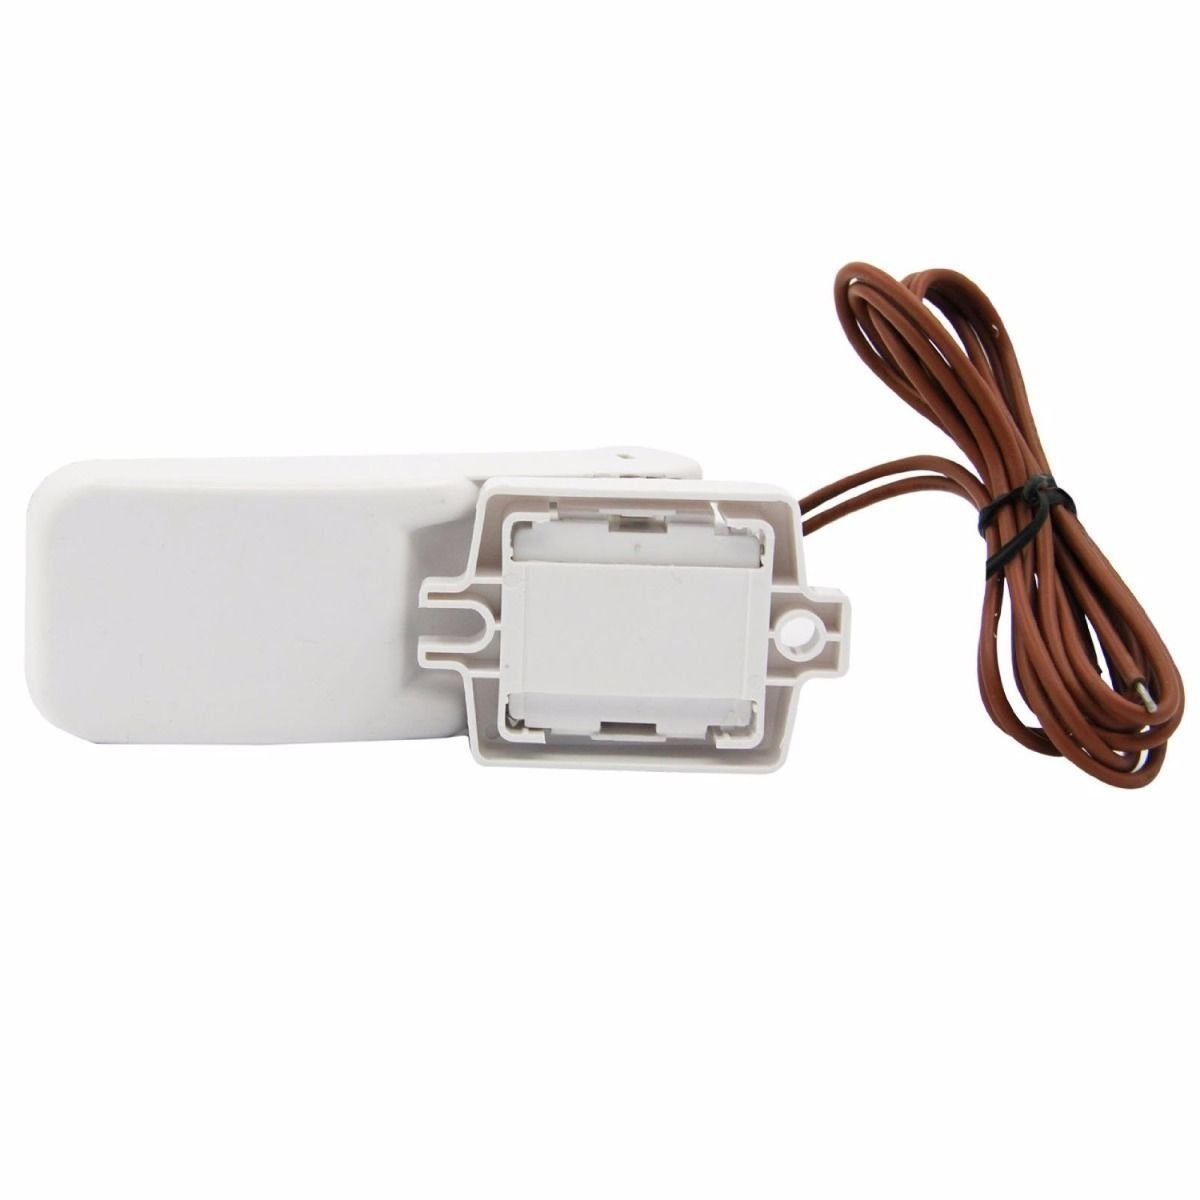 NUZAMAS Bilge Pump Float Switch Automatic 12V 24V or 32V For Boat Yacht Caravan Camping Marine Fishing Water Pump Auto ON//OFF